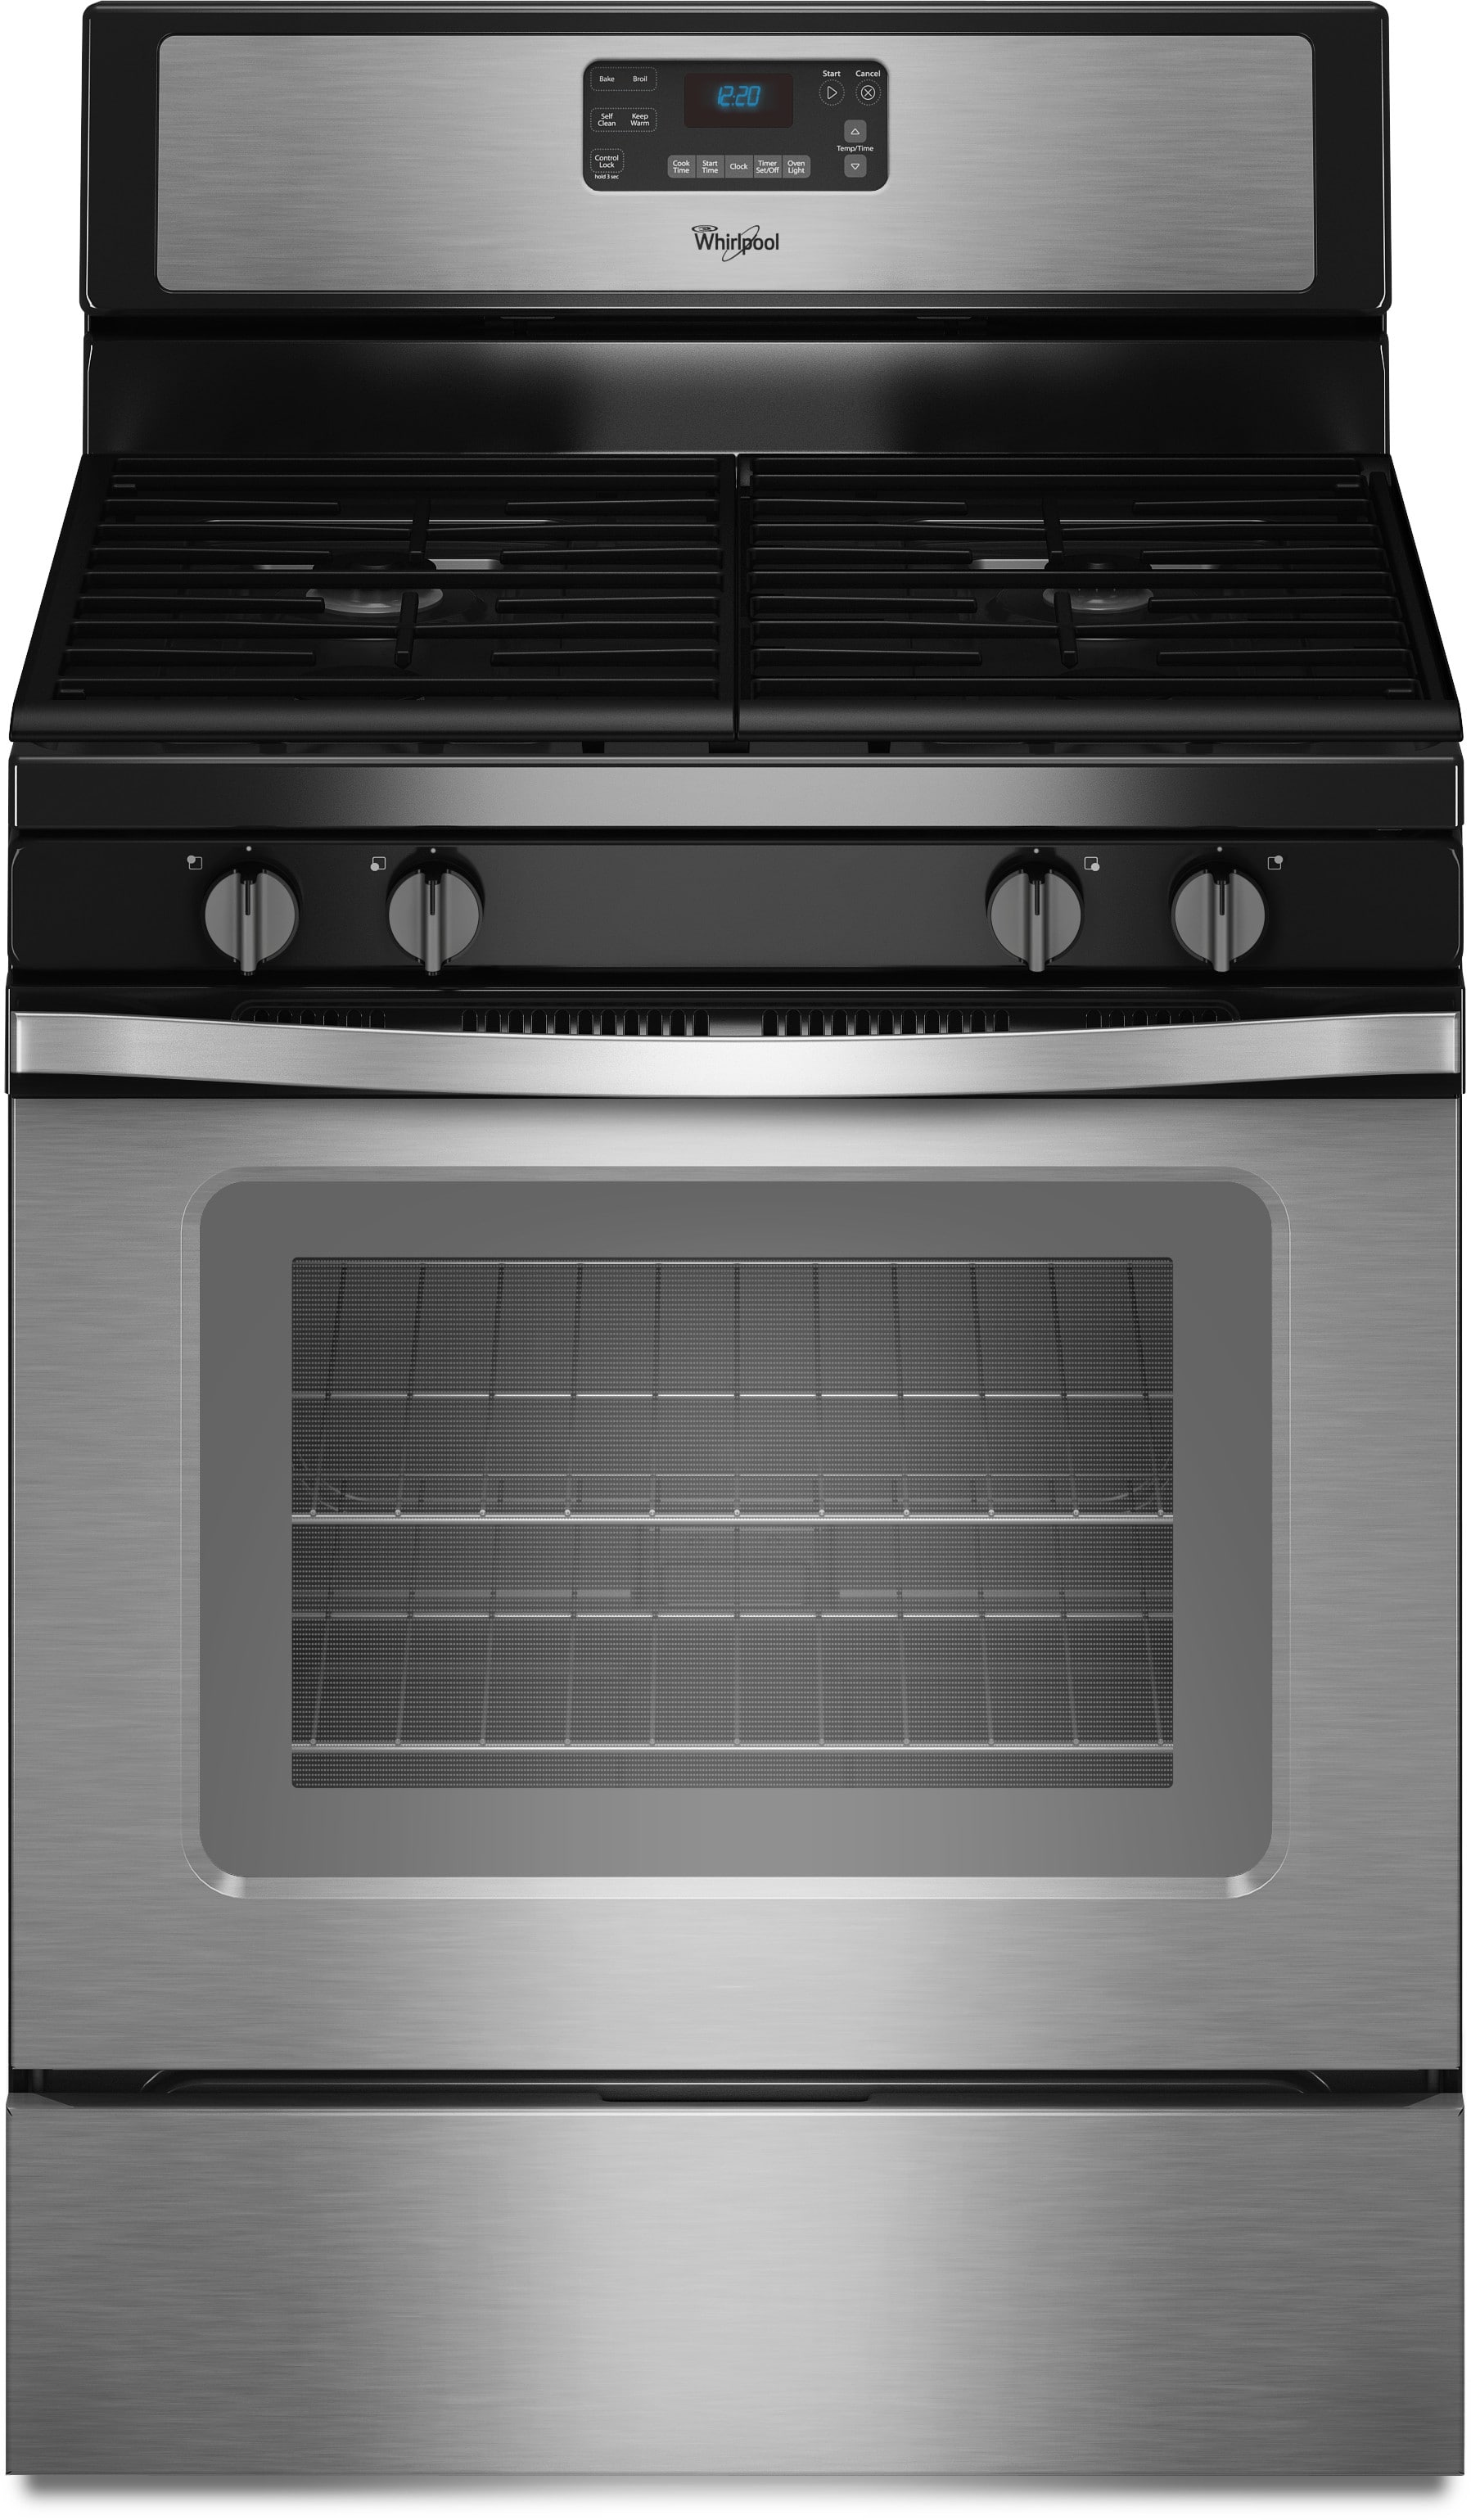 Whirlpool Wfg515s0es 30 Inch Freestanding Gas Range With